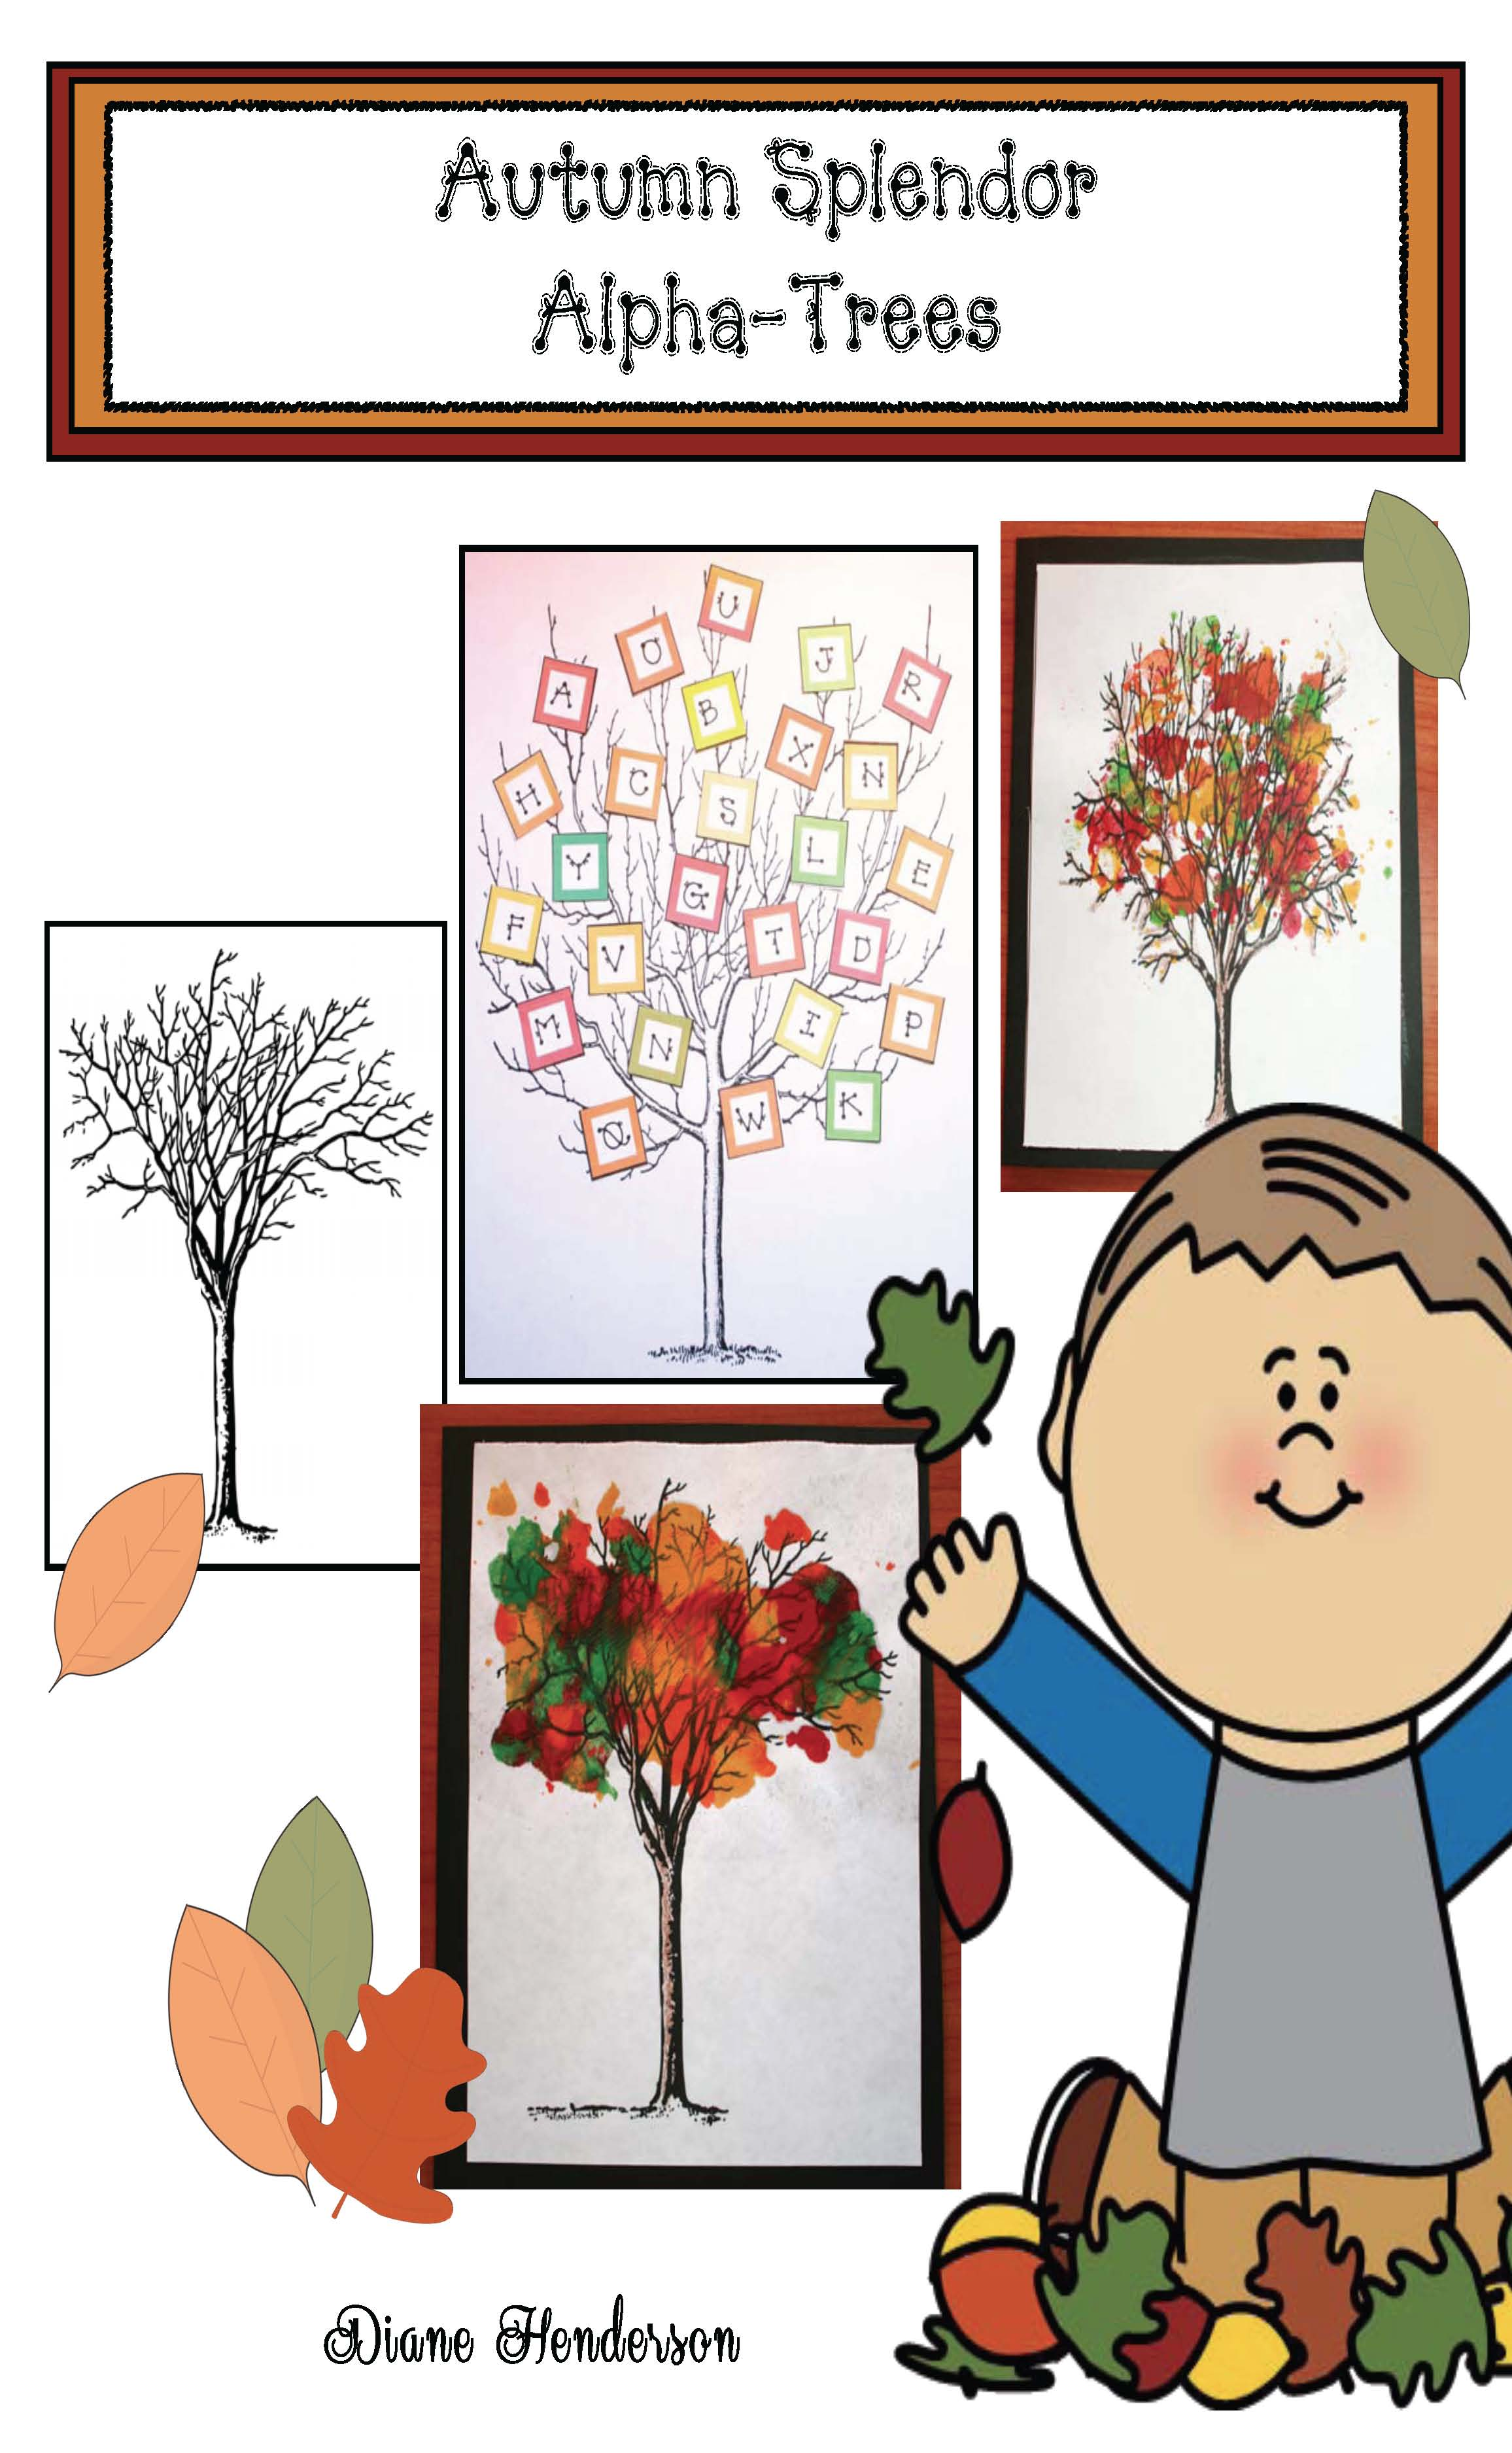 https://www.teacherspayteachers.com/Product/Autumn-Splendor-Alpha-Trees-2075821